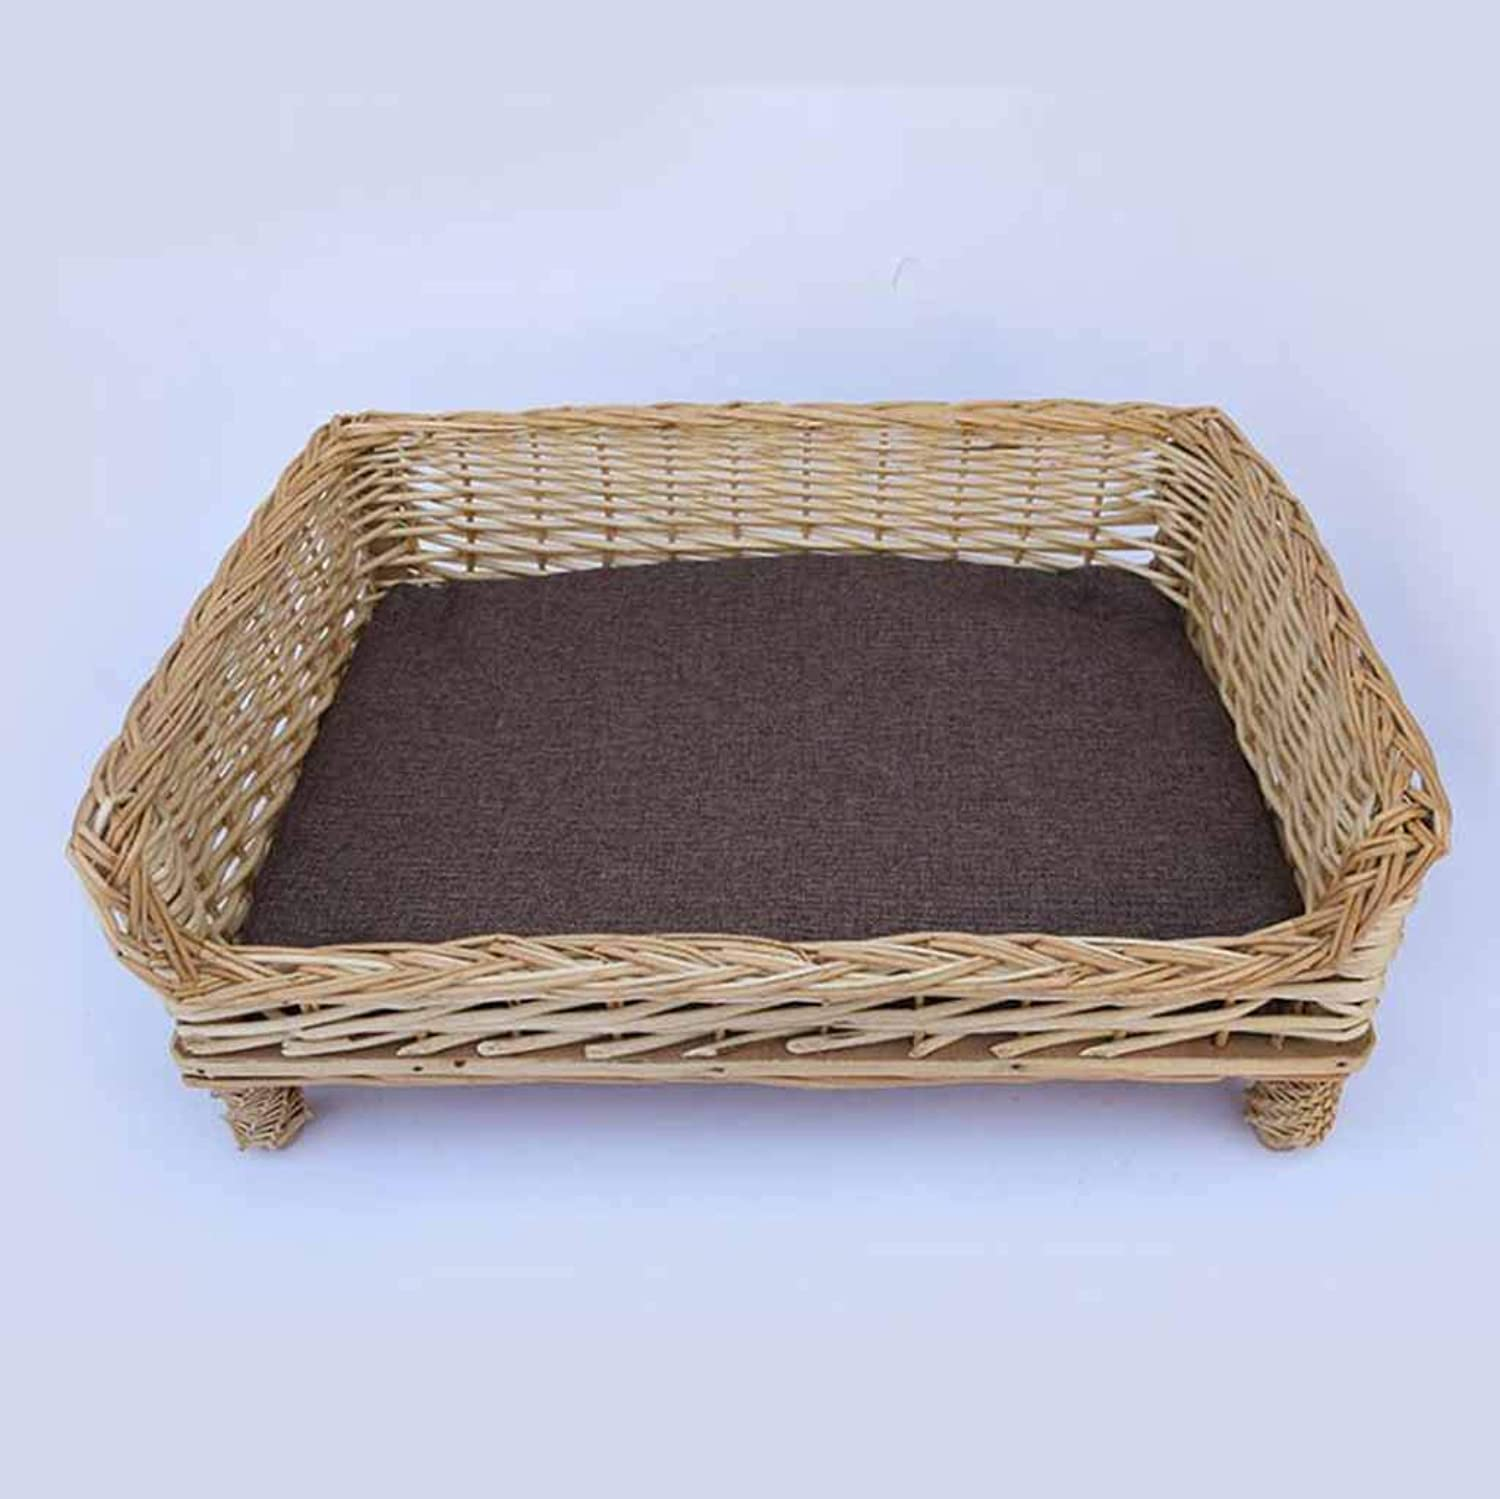 Pet Nest Pure HandWoven Wicker MultiStandard Cat Litter Dog Kennel Removable and Washable Pet Supplies